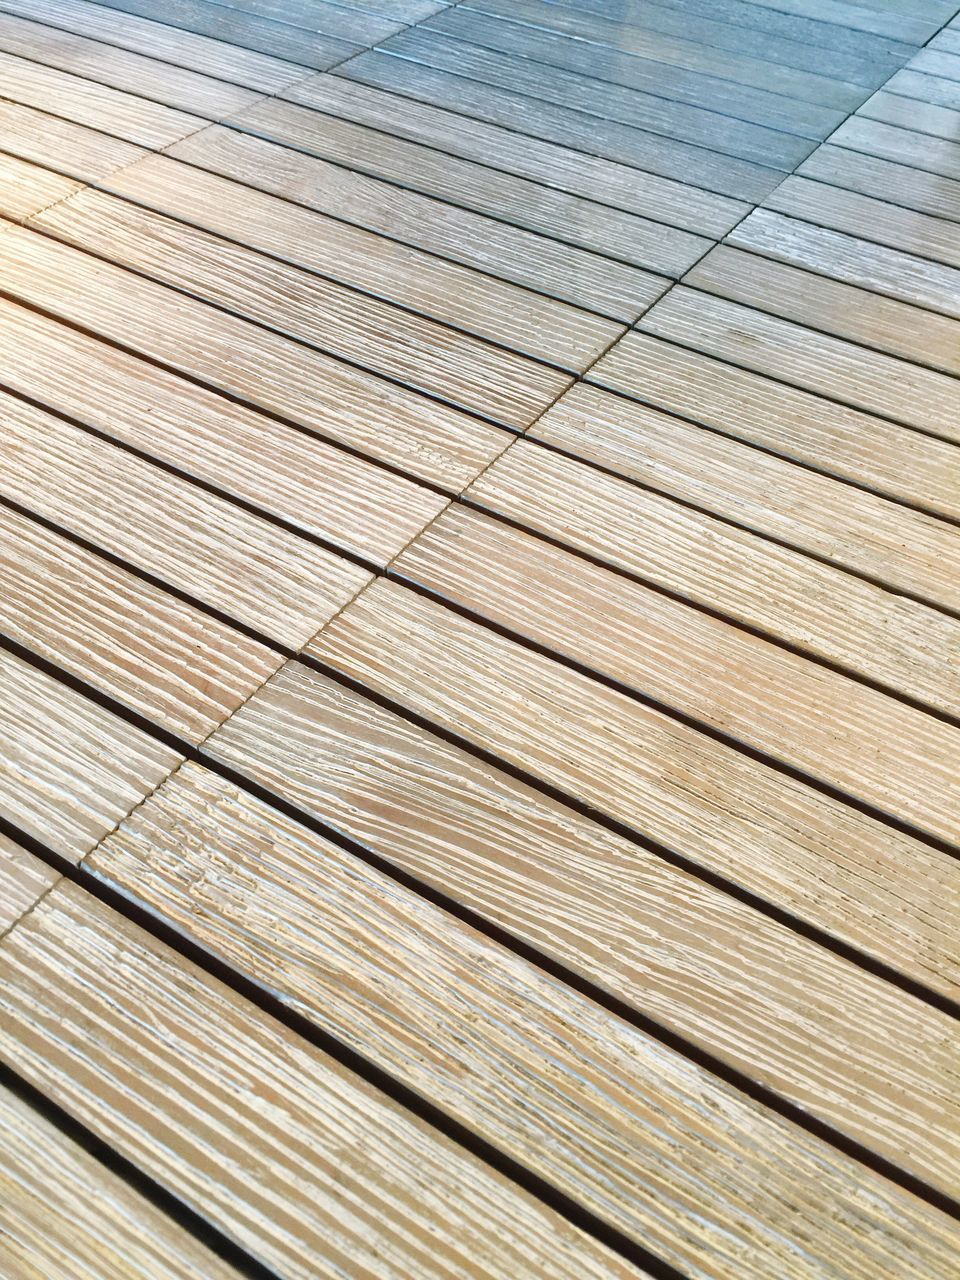 pattern, striped, backgrounds, wood - material, wood paneling, textured, hardwood, deck, wood grain, built structure, nature, no people, building exterior, tree, close-up, outdoors, day